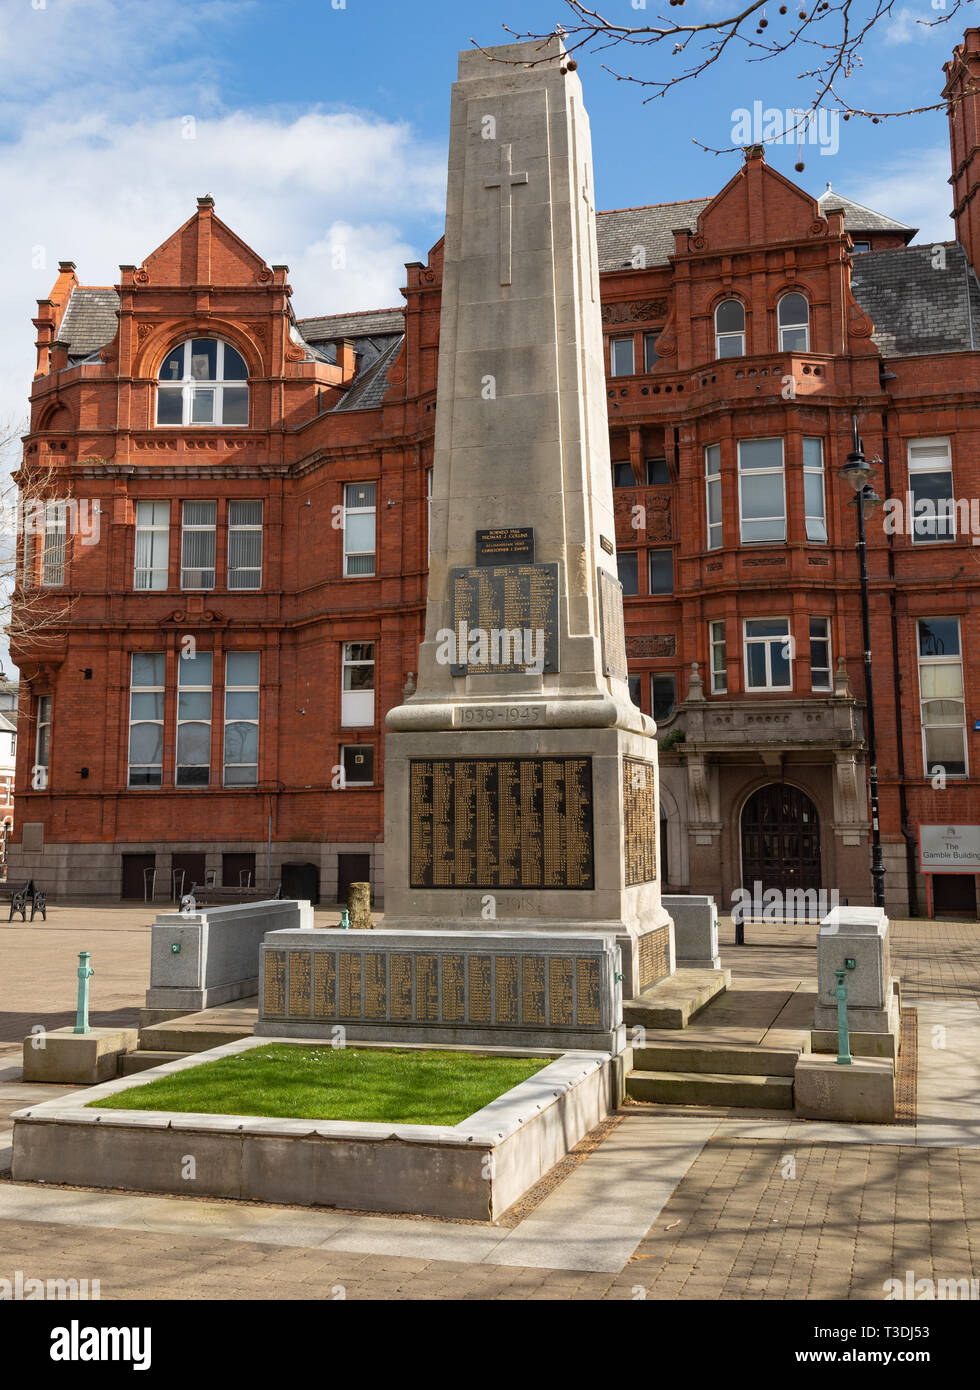 War memorial showing the names of those lost in the first world war Victoria Square St Helens Merseyside March 2019 Stock Photo